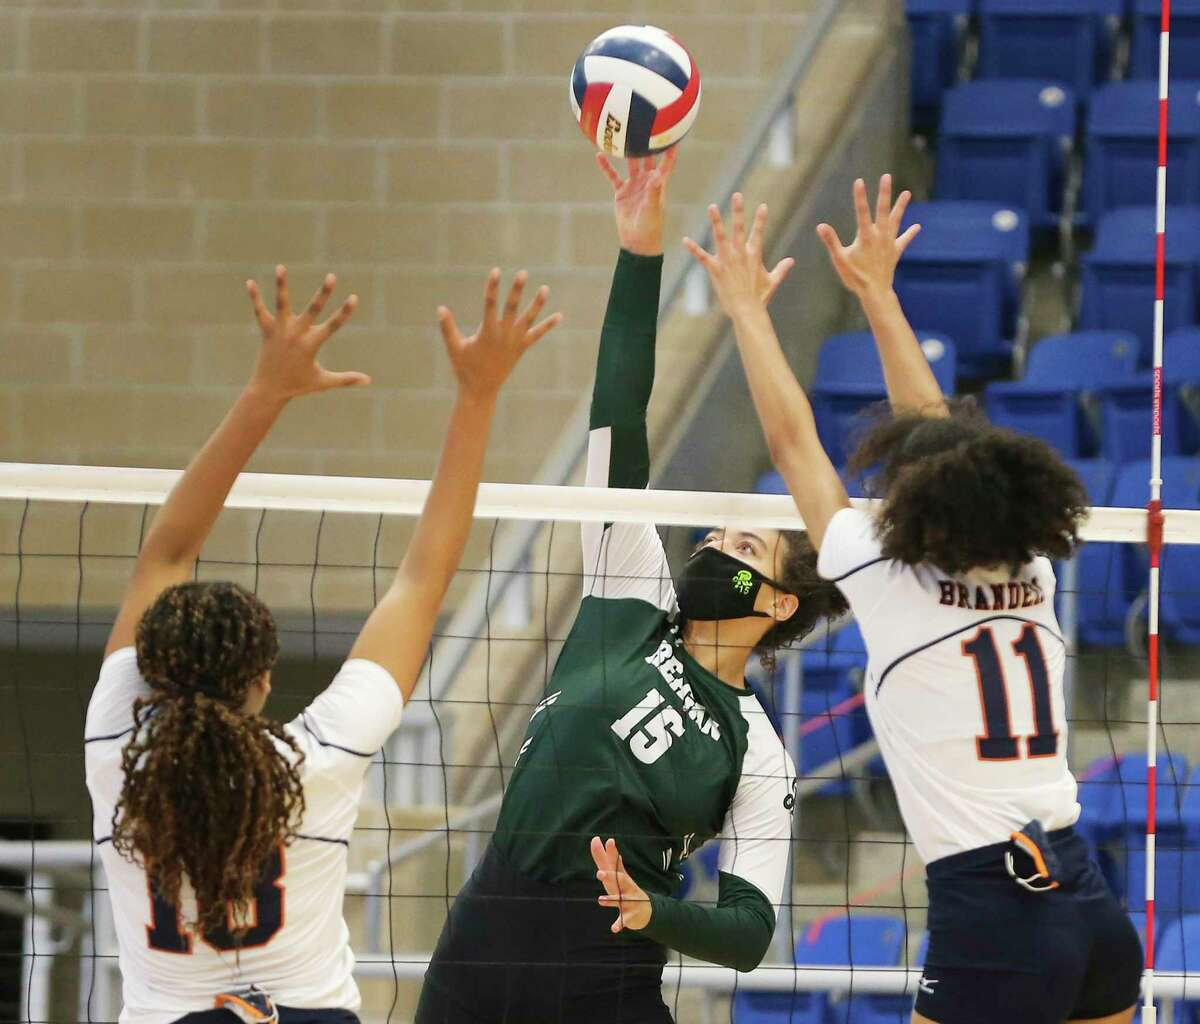 Reagan's Nyah Anderson (15) tips a shot over Brandeis' Austin Smoak (18) and Leila Smalls (11) during their girls volleyball game at Northside Sports Gym on Tuesday, Sept. 29, 2020. The Broncos defeated the Rattlers, 4-1, to take the contest.